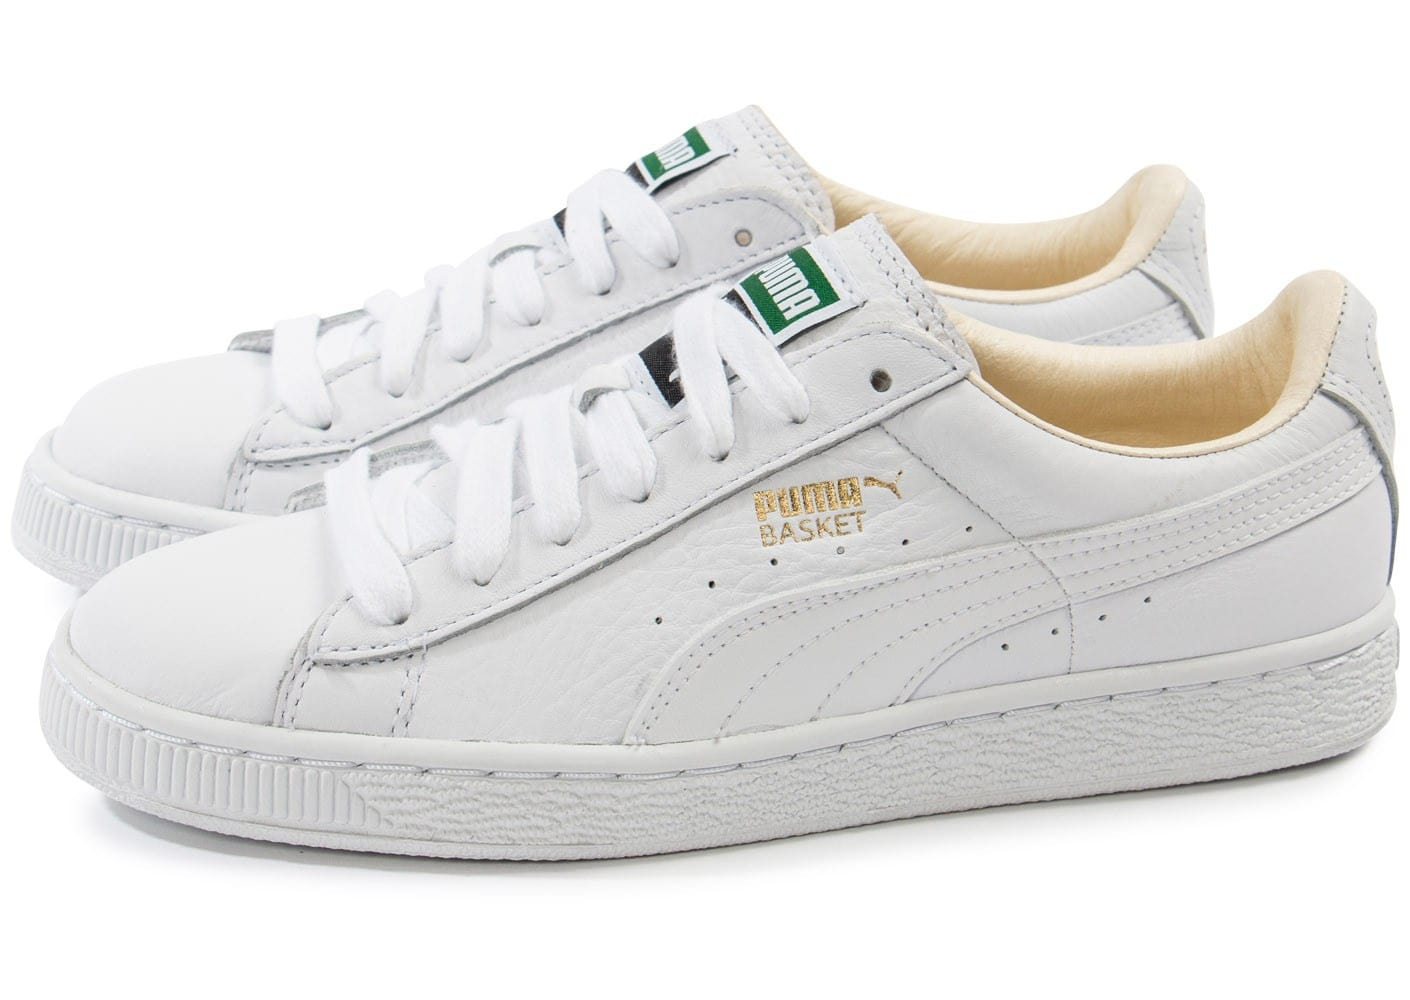 puma basket classic cuir blanche chaussures pour lyc ens chausport. Black Bedroom Furniture Sets. Home Design Ideas